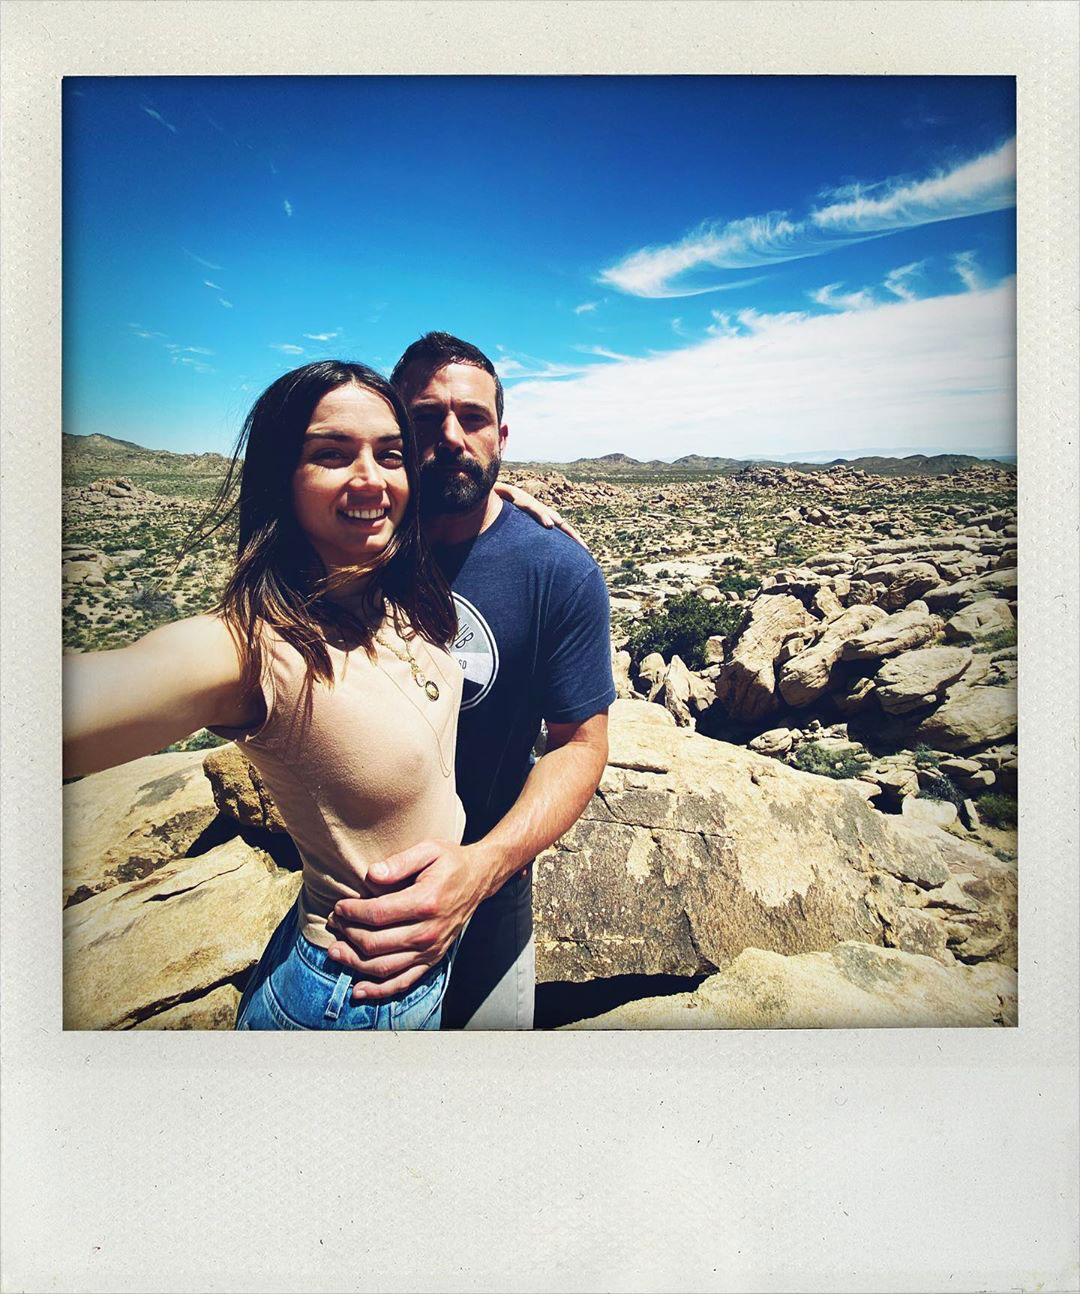 Ben Affleck Over The Top Birthday Getaway Ana de Armas Instagram Polaroid